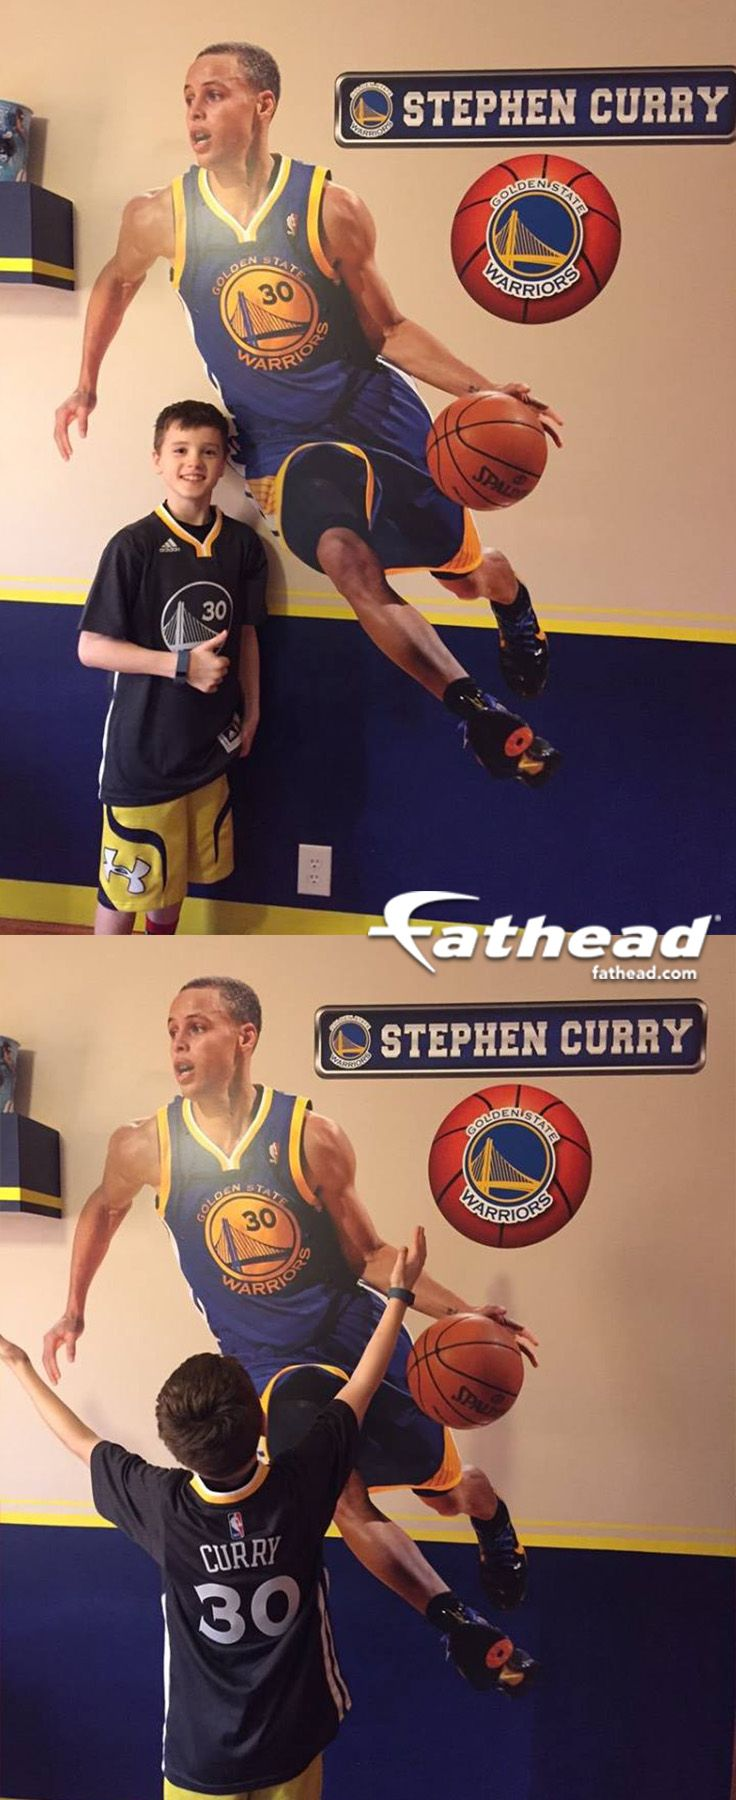 NBA | Basketball Teams + Players | If you're looking for the right Golden State Warriors gift, Fathead has the perfect wall art present that is better than any old poster or sticker. SHOP http://www.fathead.com/nba/golden-state-warriors/stephen-curry/?cm_mmc=social-_-pinterest-_-goldenstate-_-stephcurryfan | DIY Bedroom Decor for Boys + Girls | Custom Decals | Peel & Stick | Man Cave | Home Decor